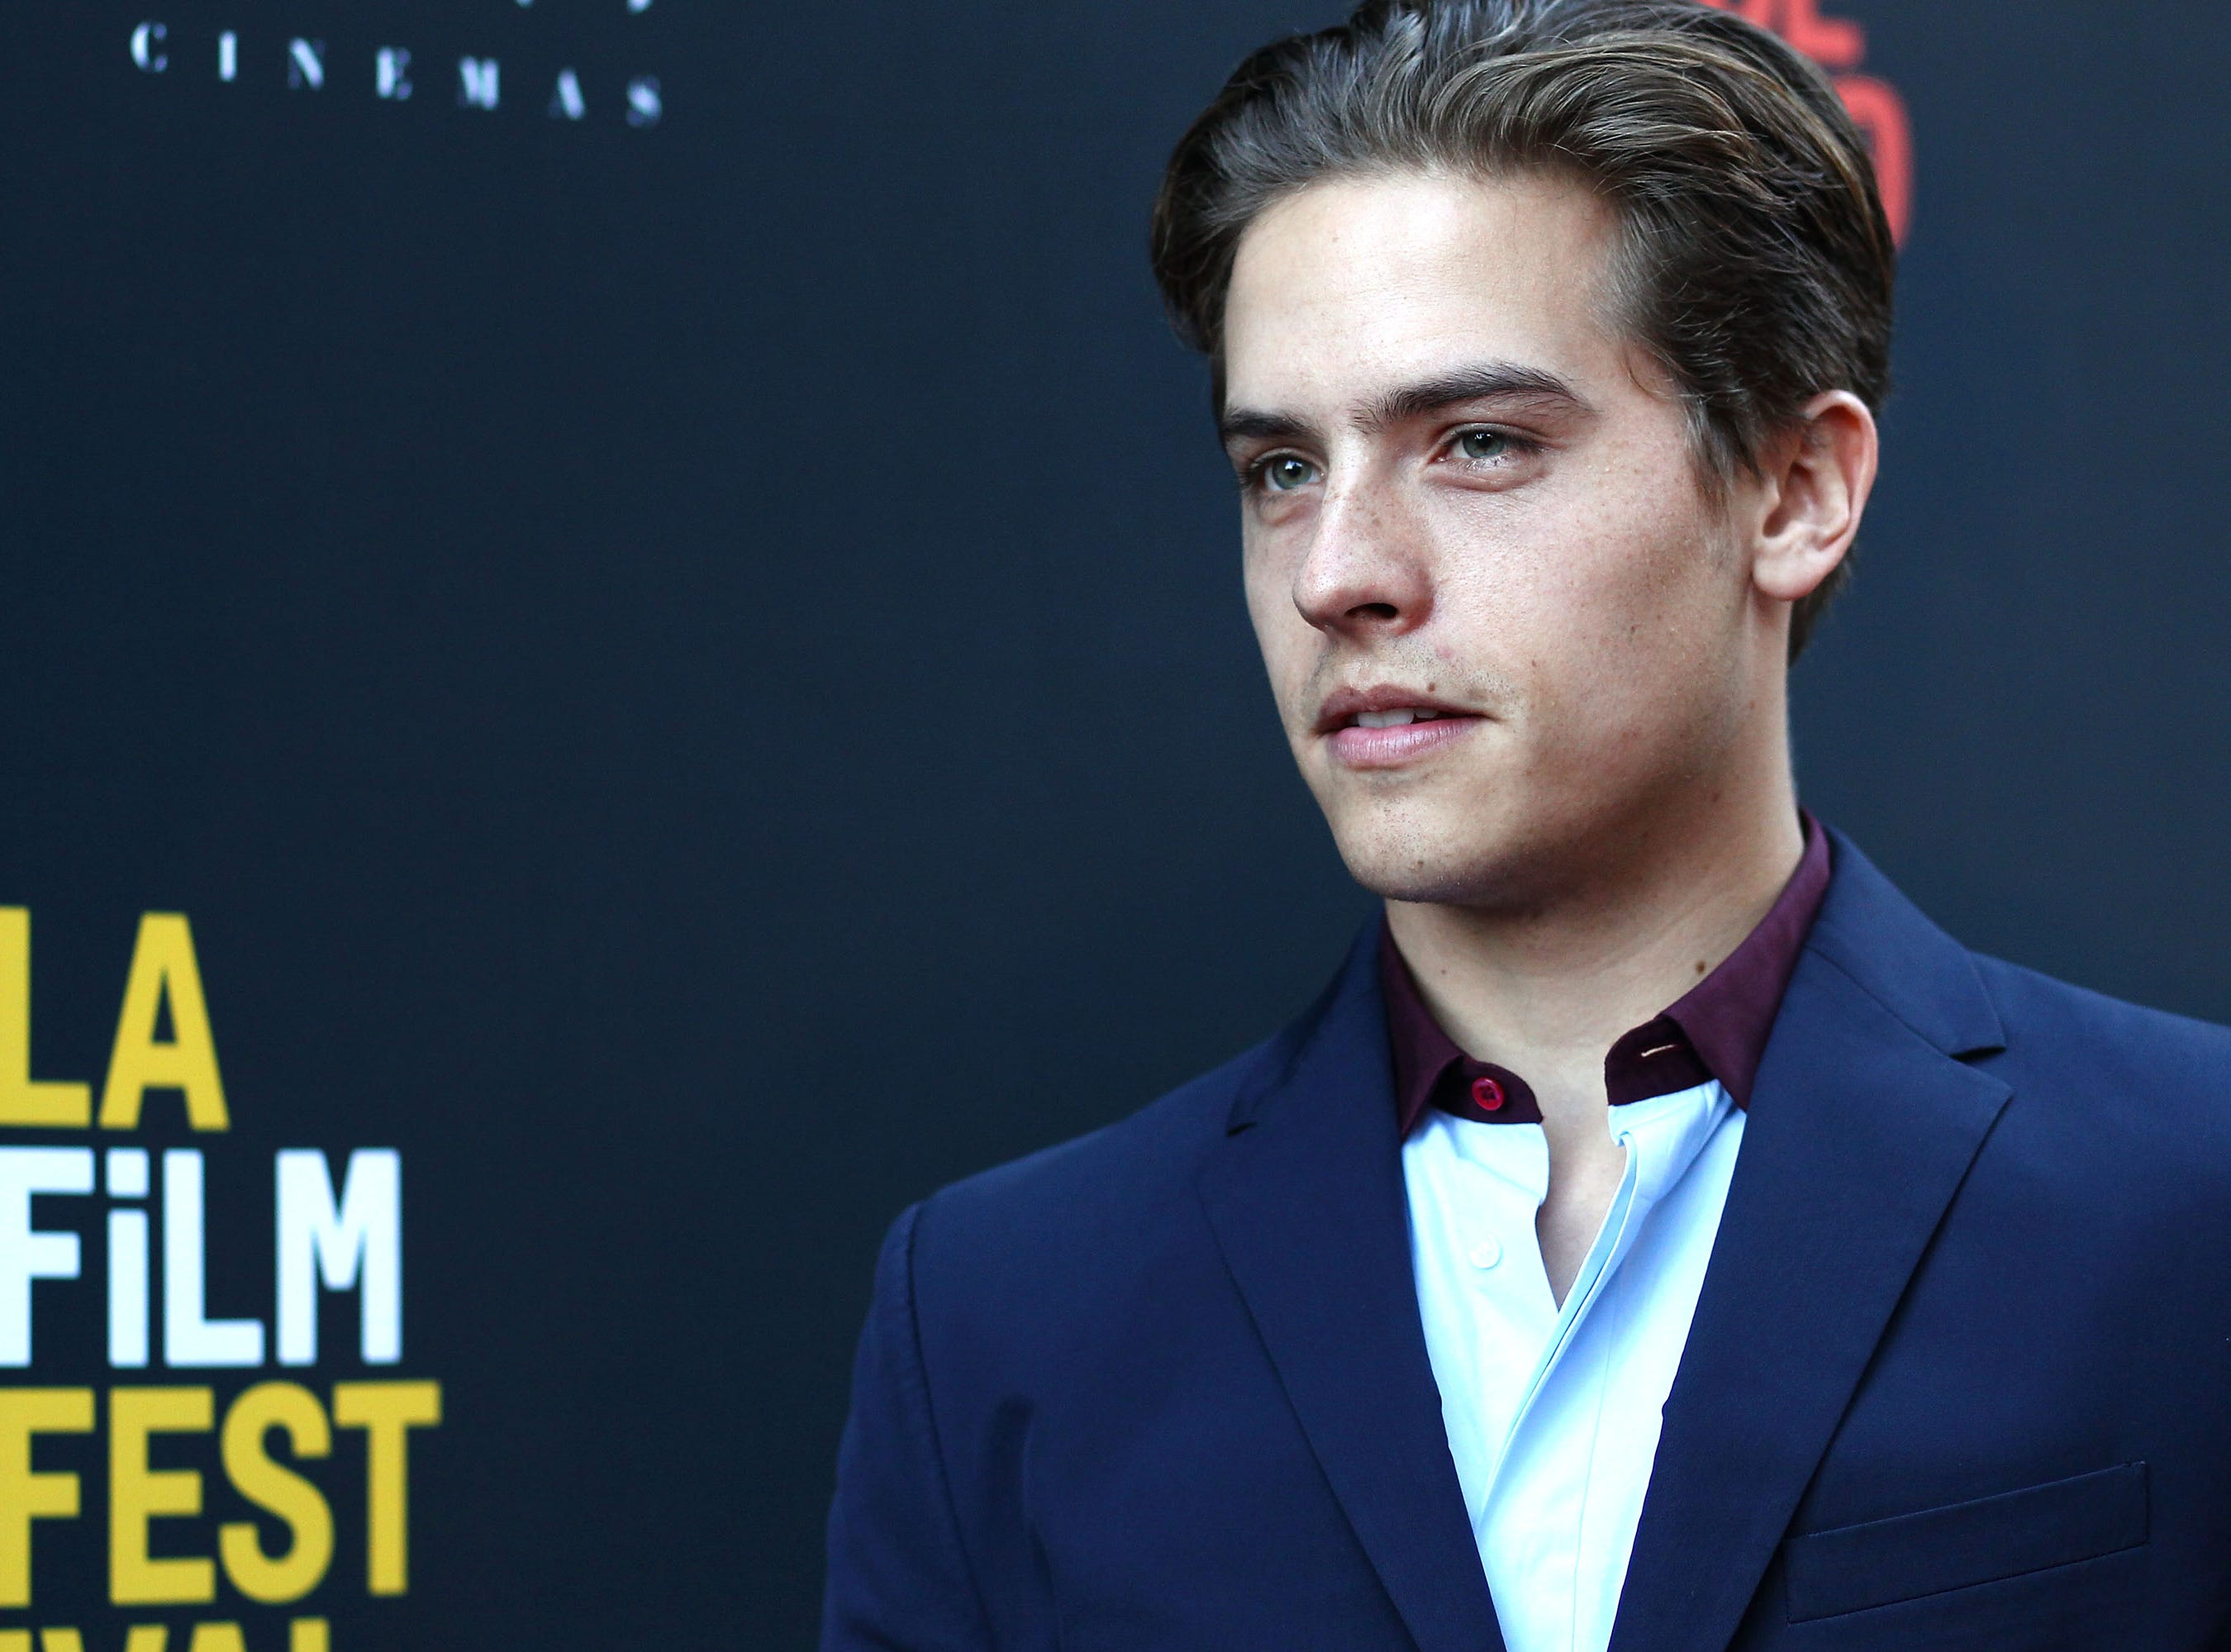 "CULVER CITY, CA - SEPTEMBER 22:  Actor Dylan Sprouse attends the ""BANANA SPLIT"" premiere at the Los Angeles Film Festival at ArcLight Culver City on September 22, 2018 in Culver City, California.  (Photo by Tommaso Boddi/Getty Images for American High) ORG XMIT: 775231903 ORIG FILE ID: 1038193444"